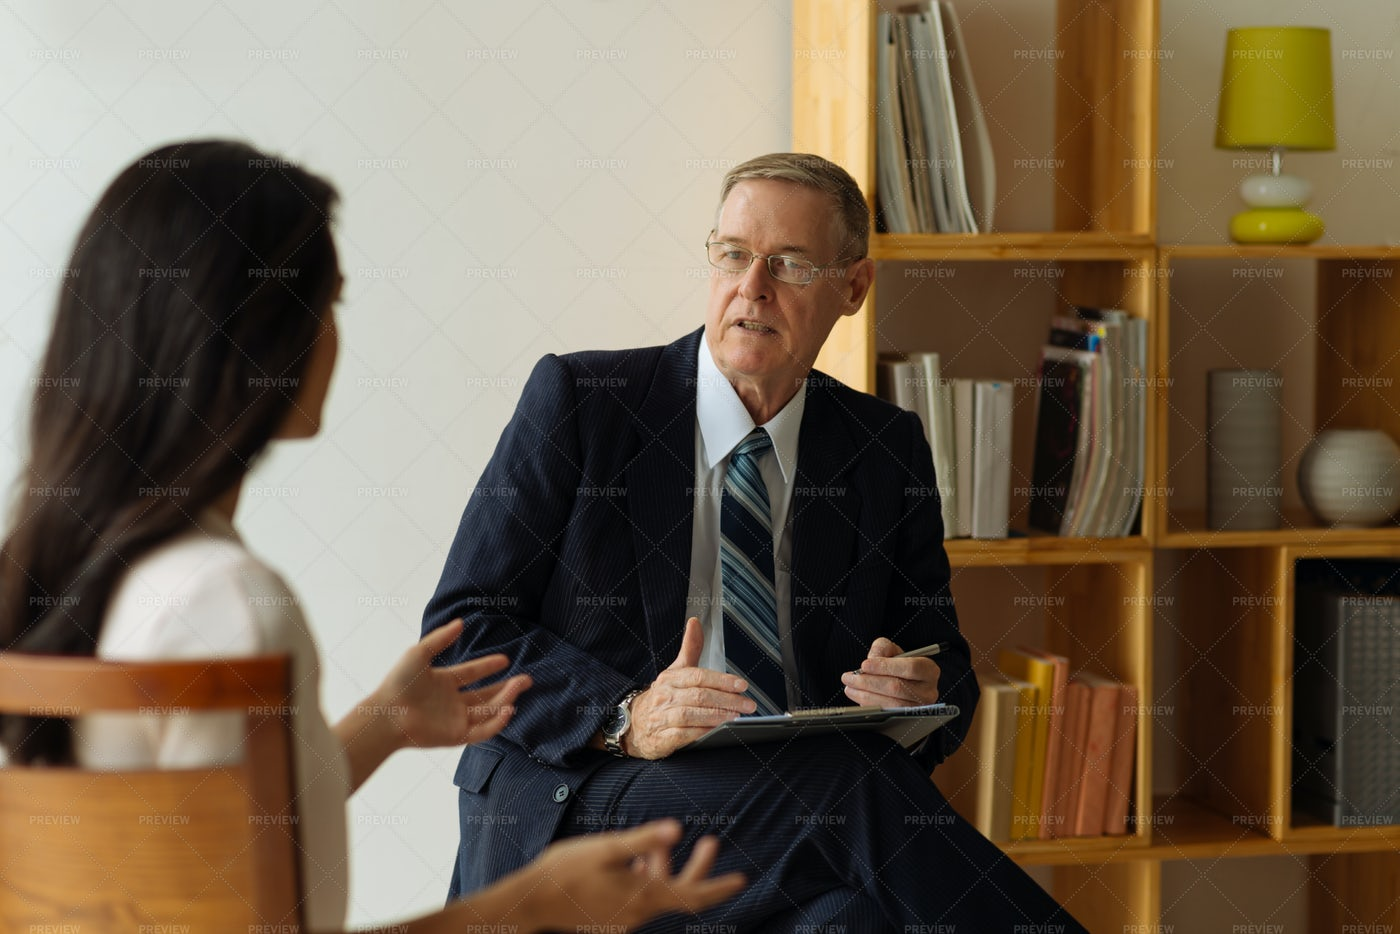 Phycologist Talking To Patient: Stock Photos